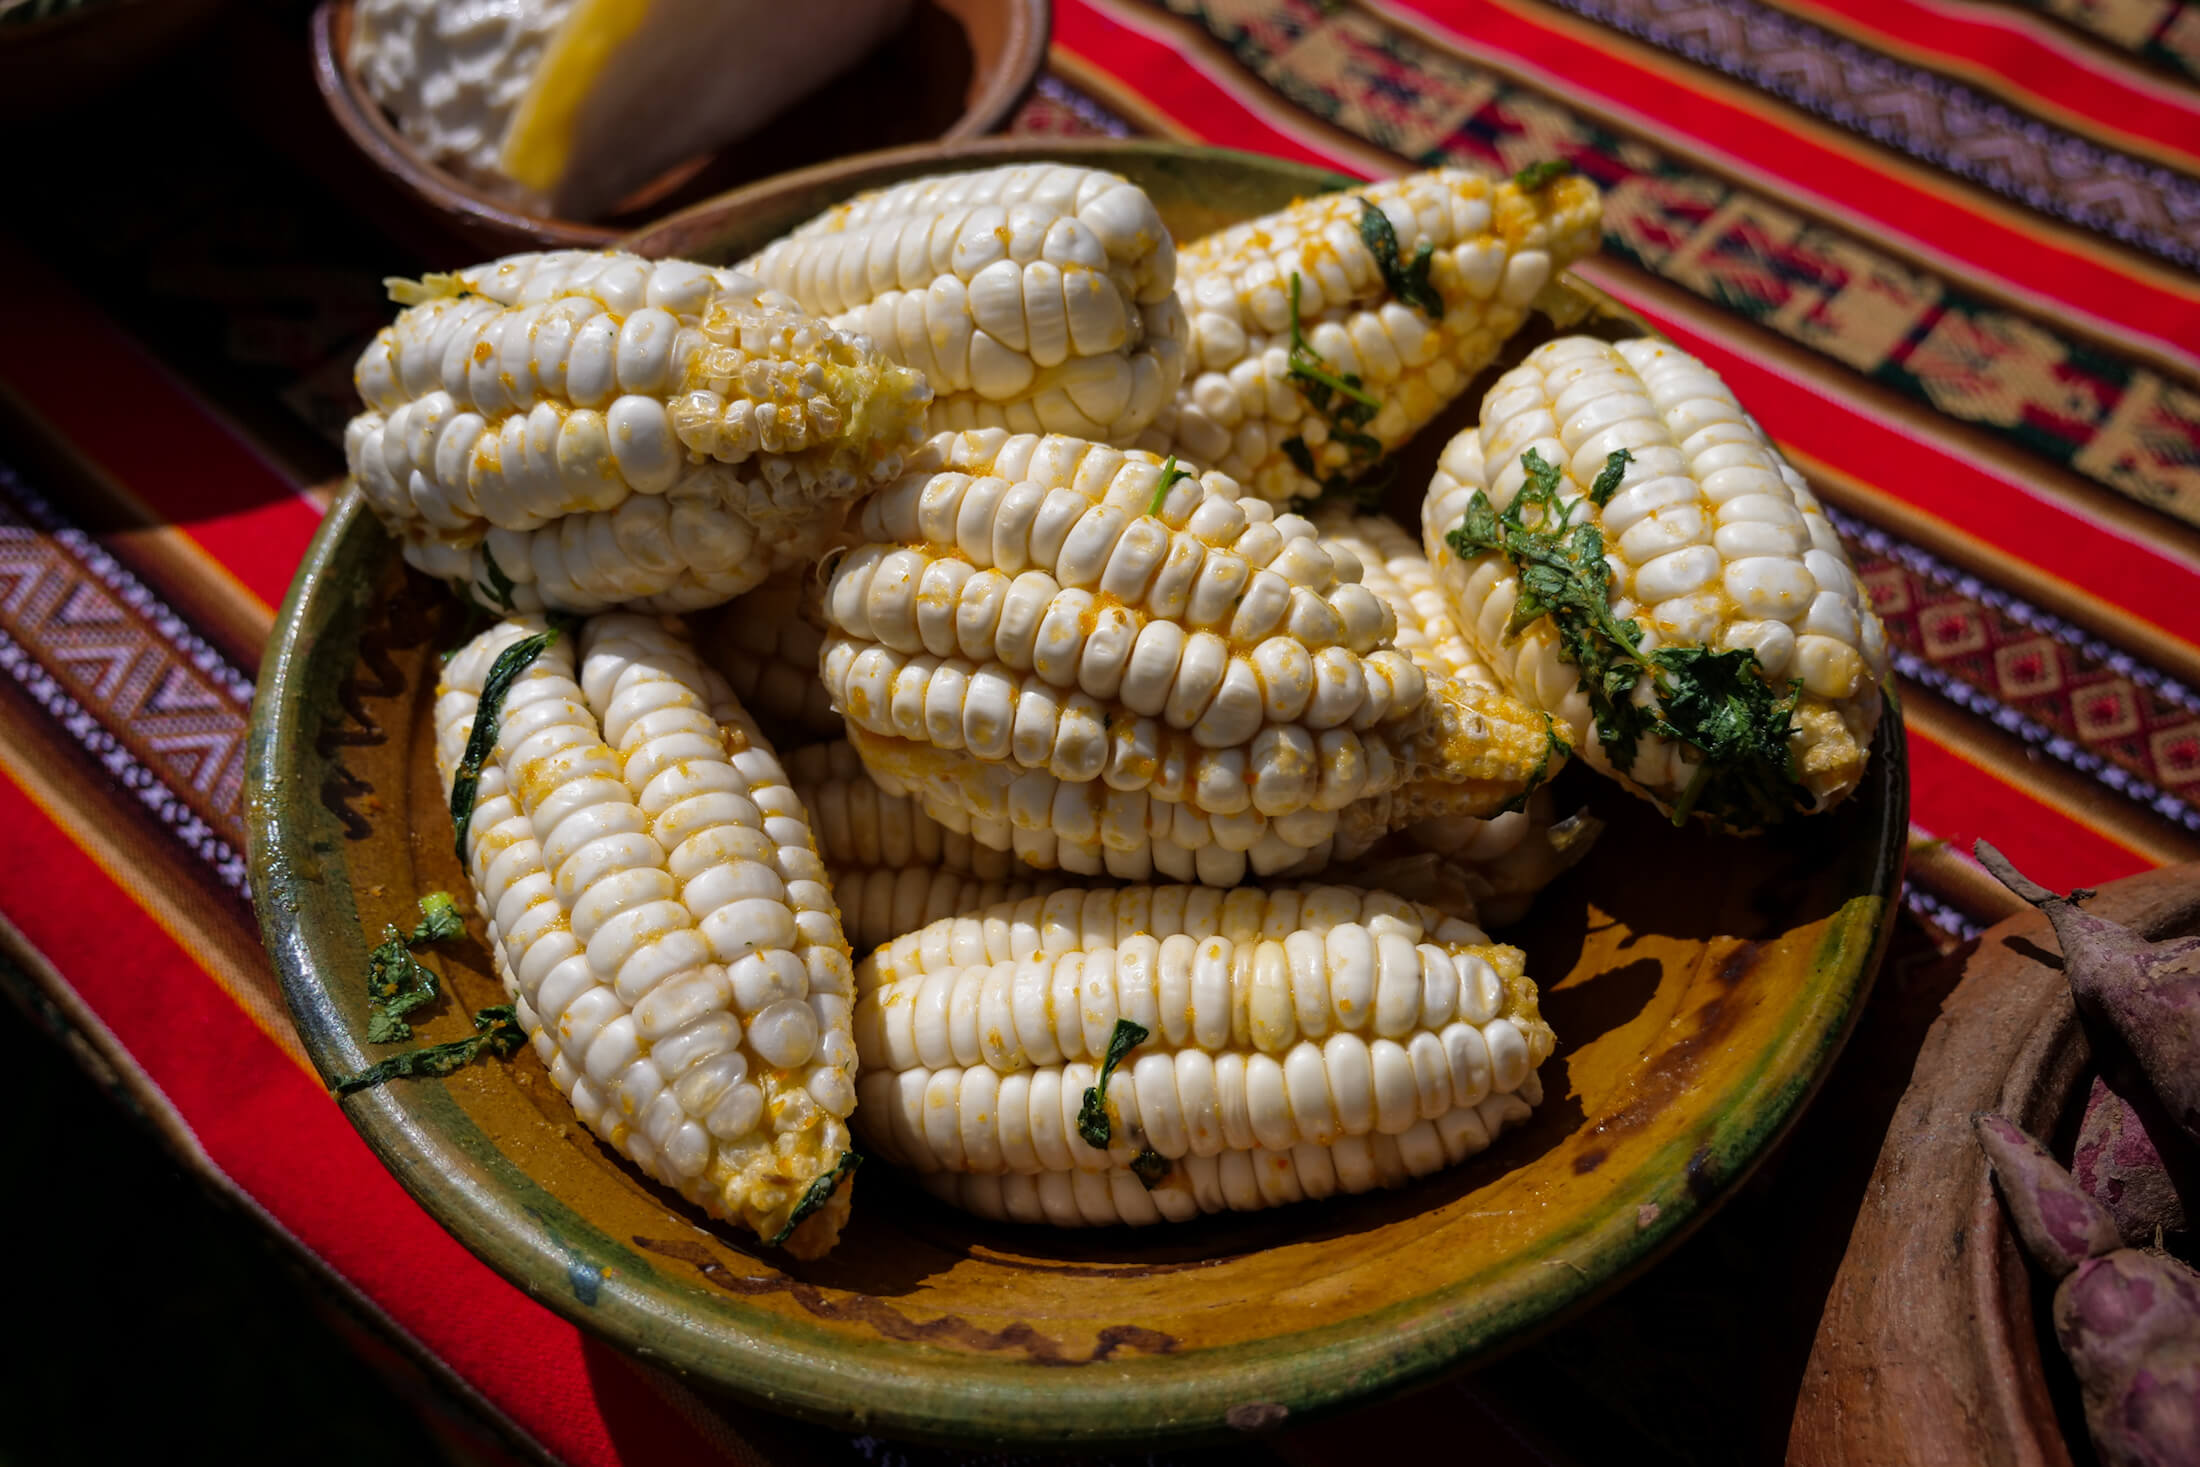 these massive-kernel ears of corn (choclo) Are also key ingredients to the Pachamanca